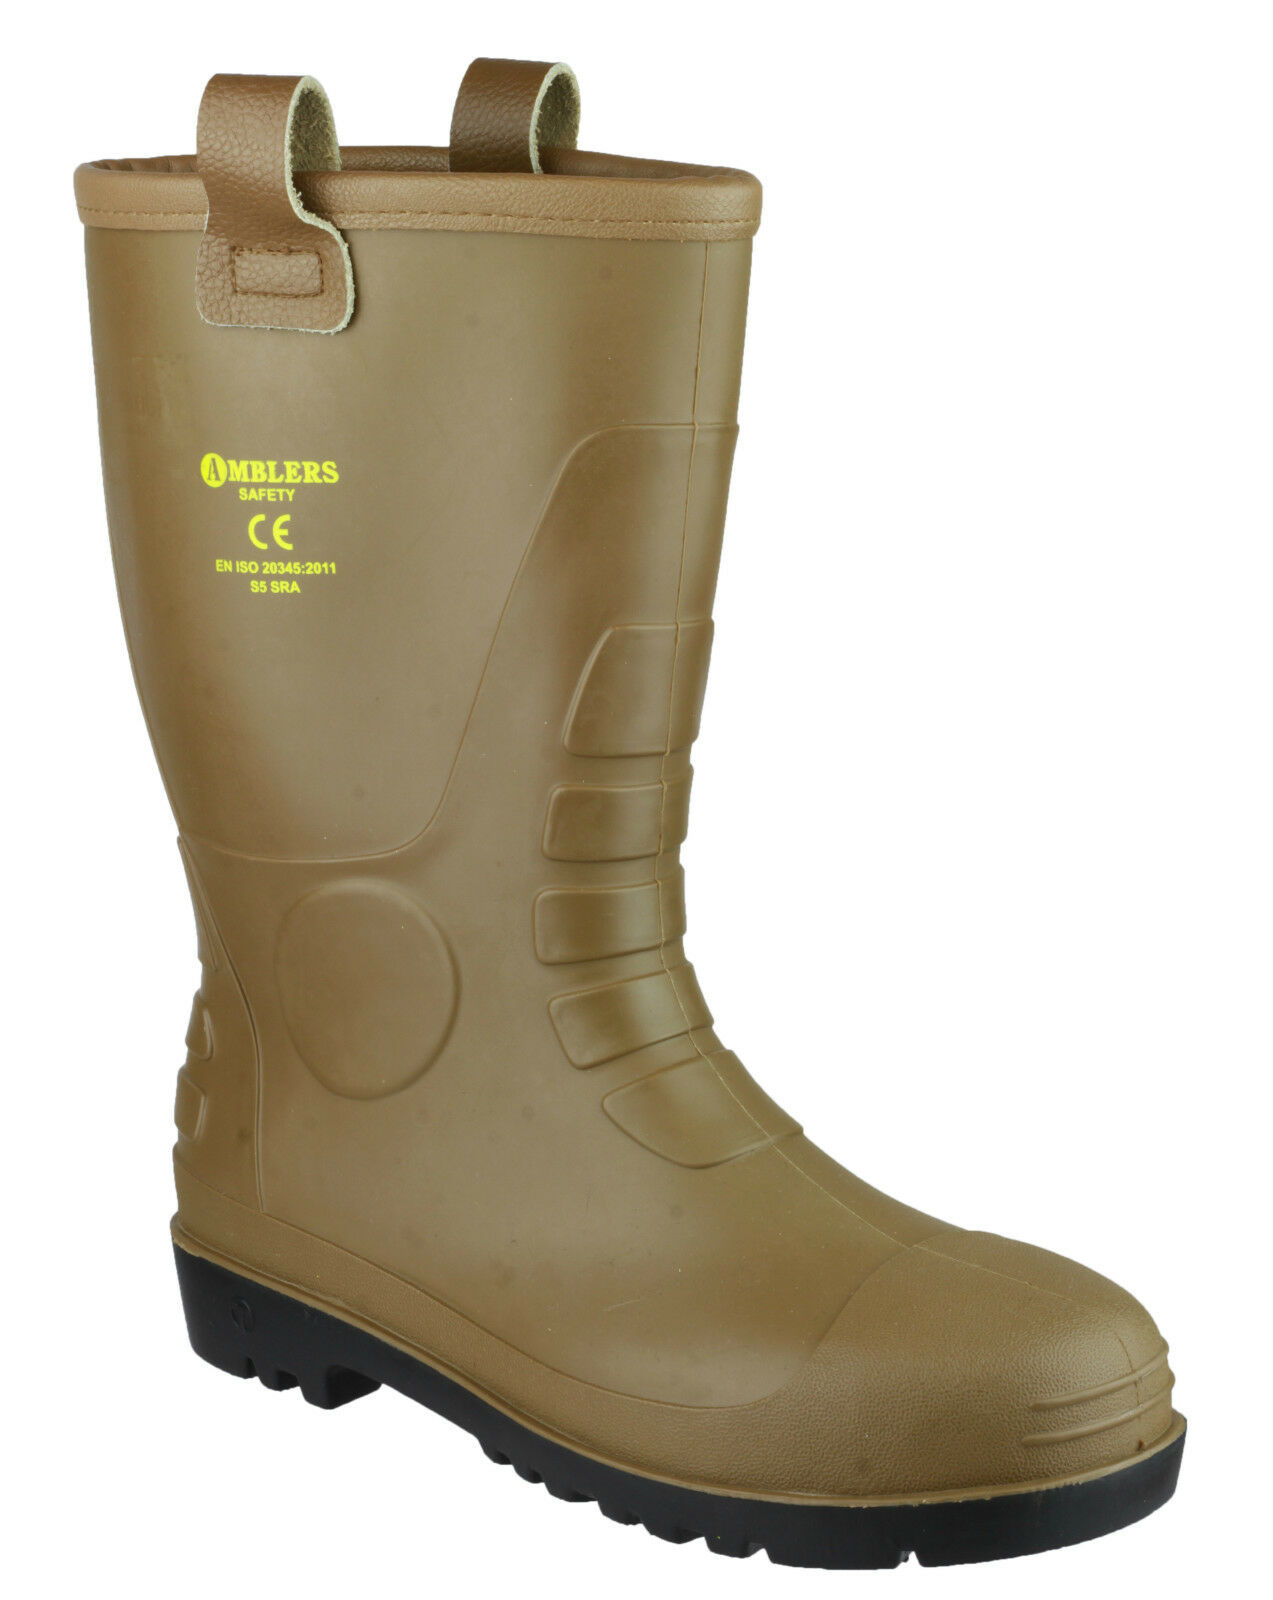 Amblers FS95 Rigger Safety Waterproof Mens Steel Toe Cap Industrial Boots UK4-12